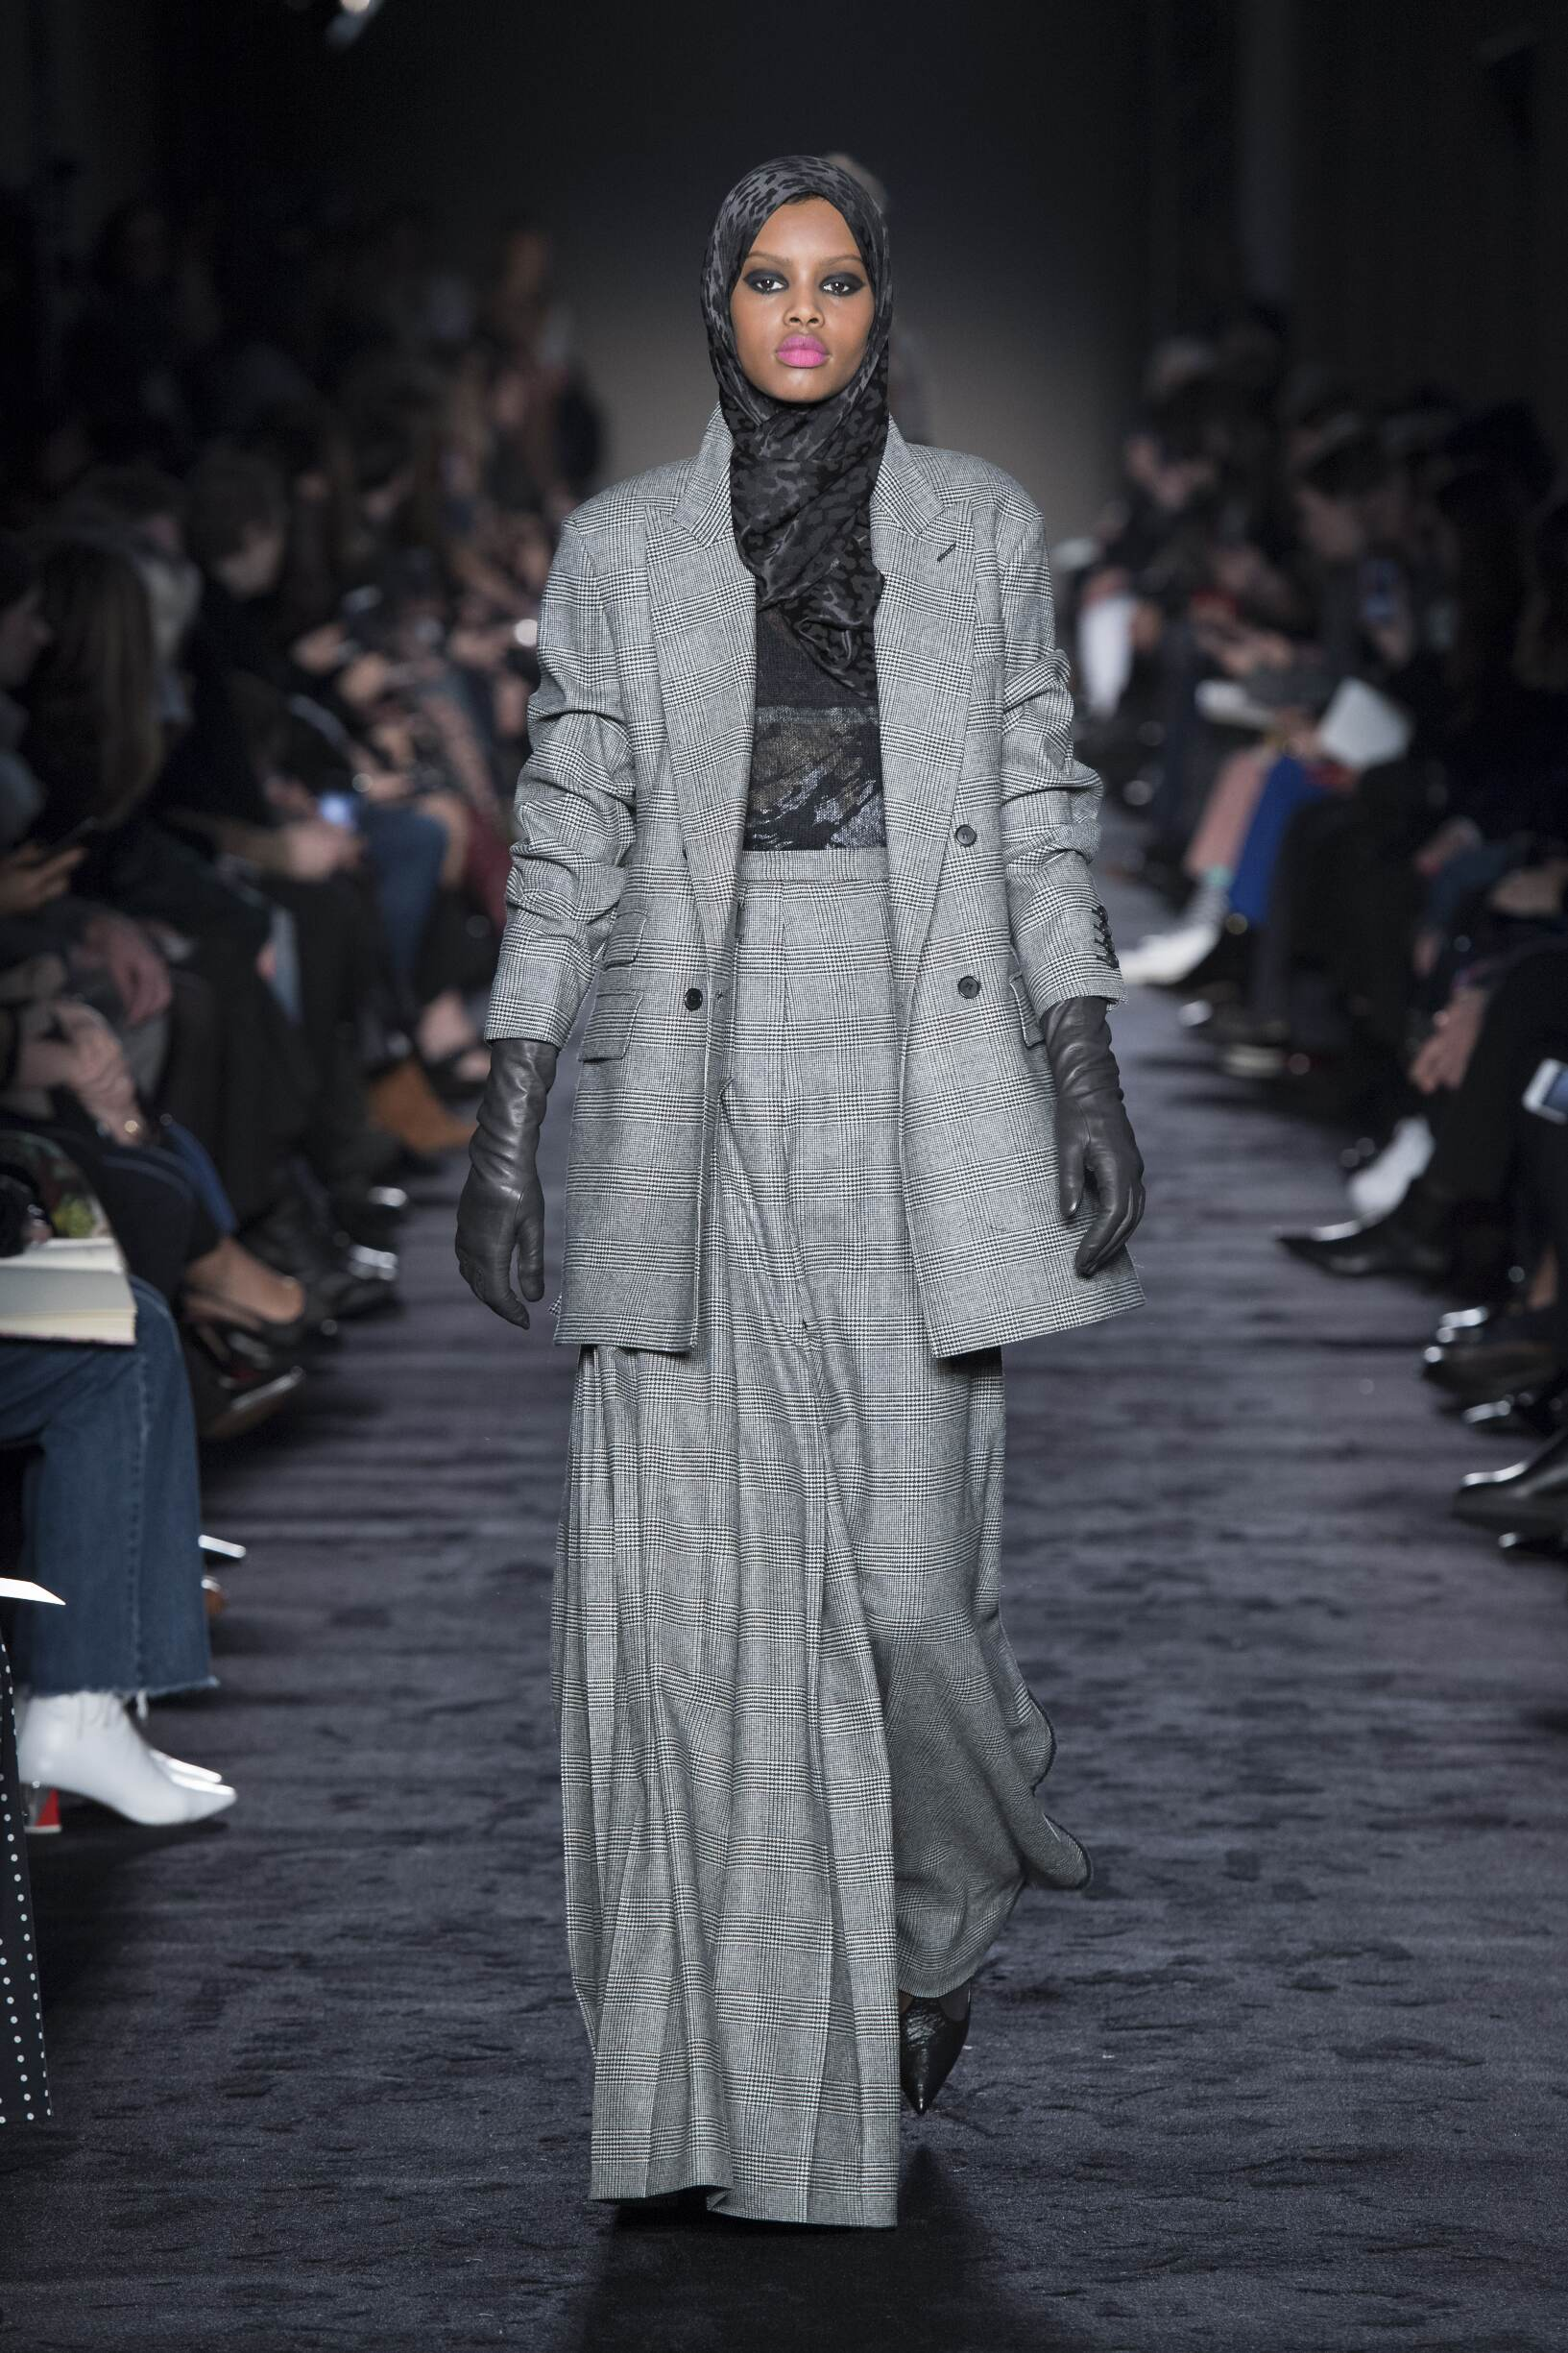 Catwalk Max Mara Winter 2018